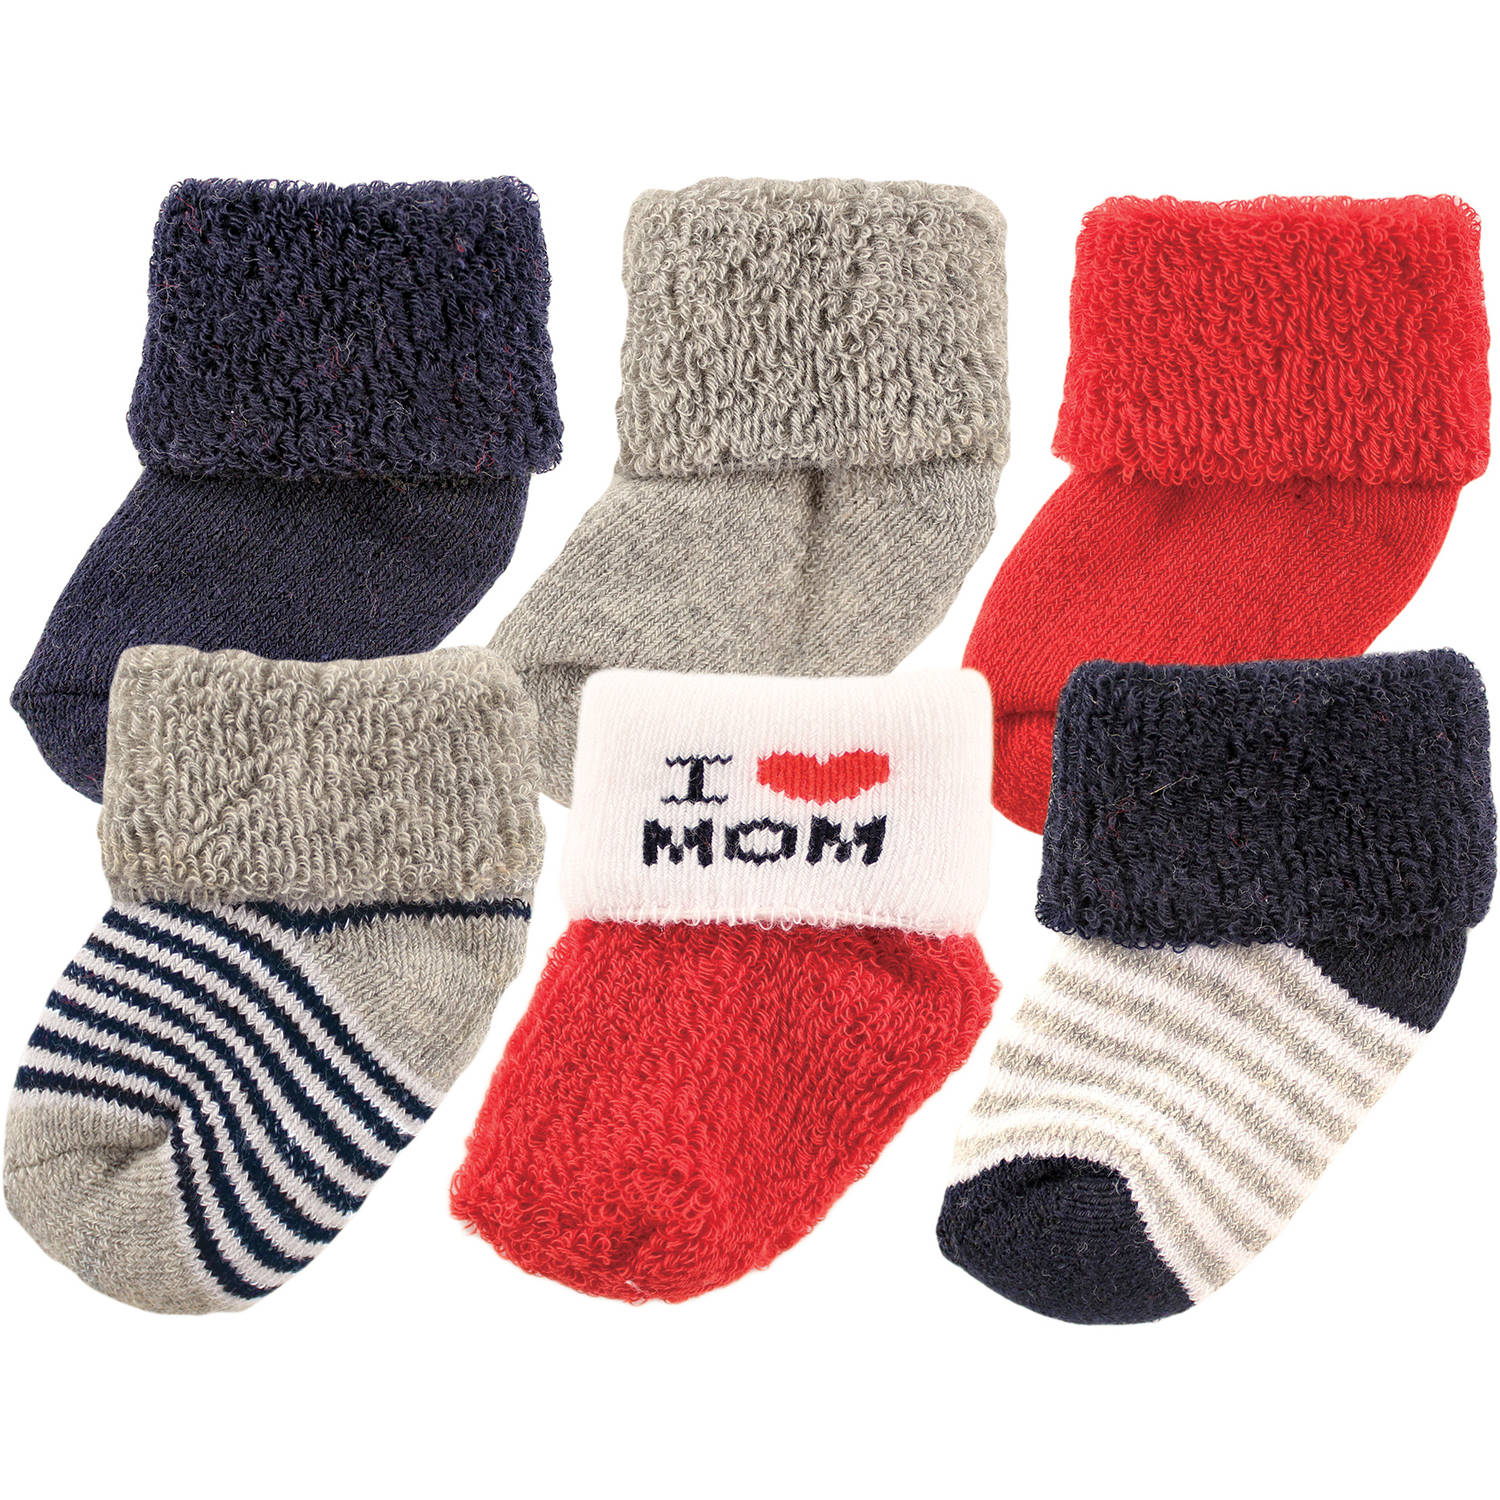 Luvable Friends Newborn Baby Boy Socks 6-Pack